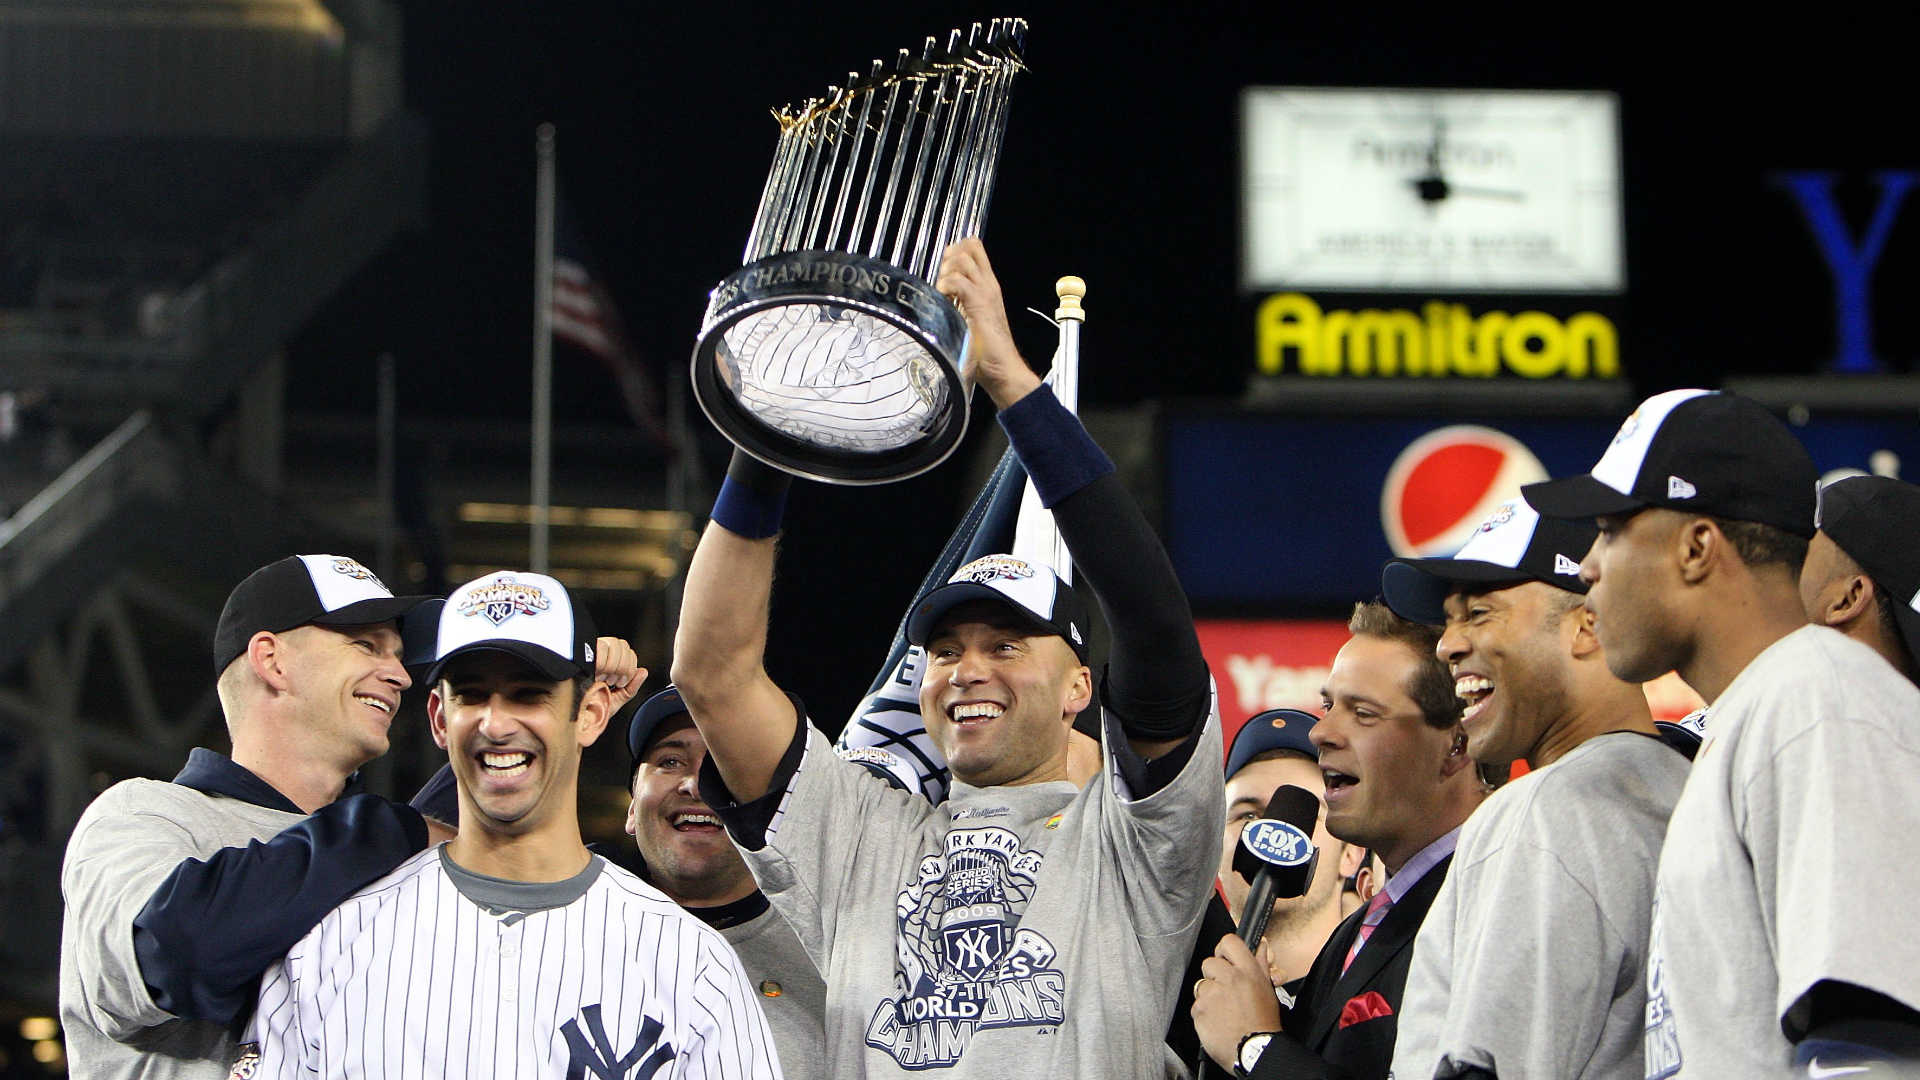 Yankees-2009-world-series-ftr-gijpg_965j3vdp98c815o5caw1971lp